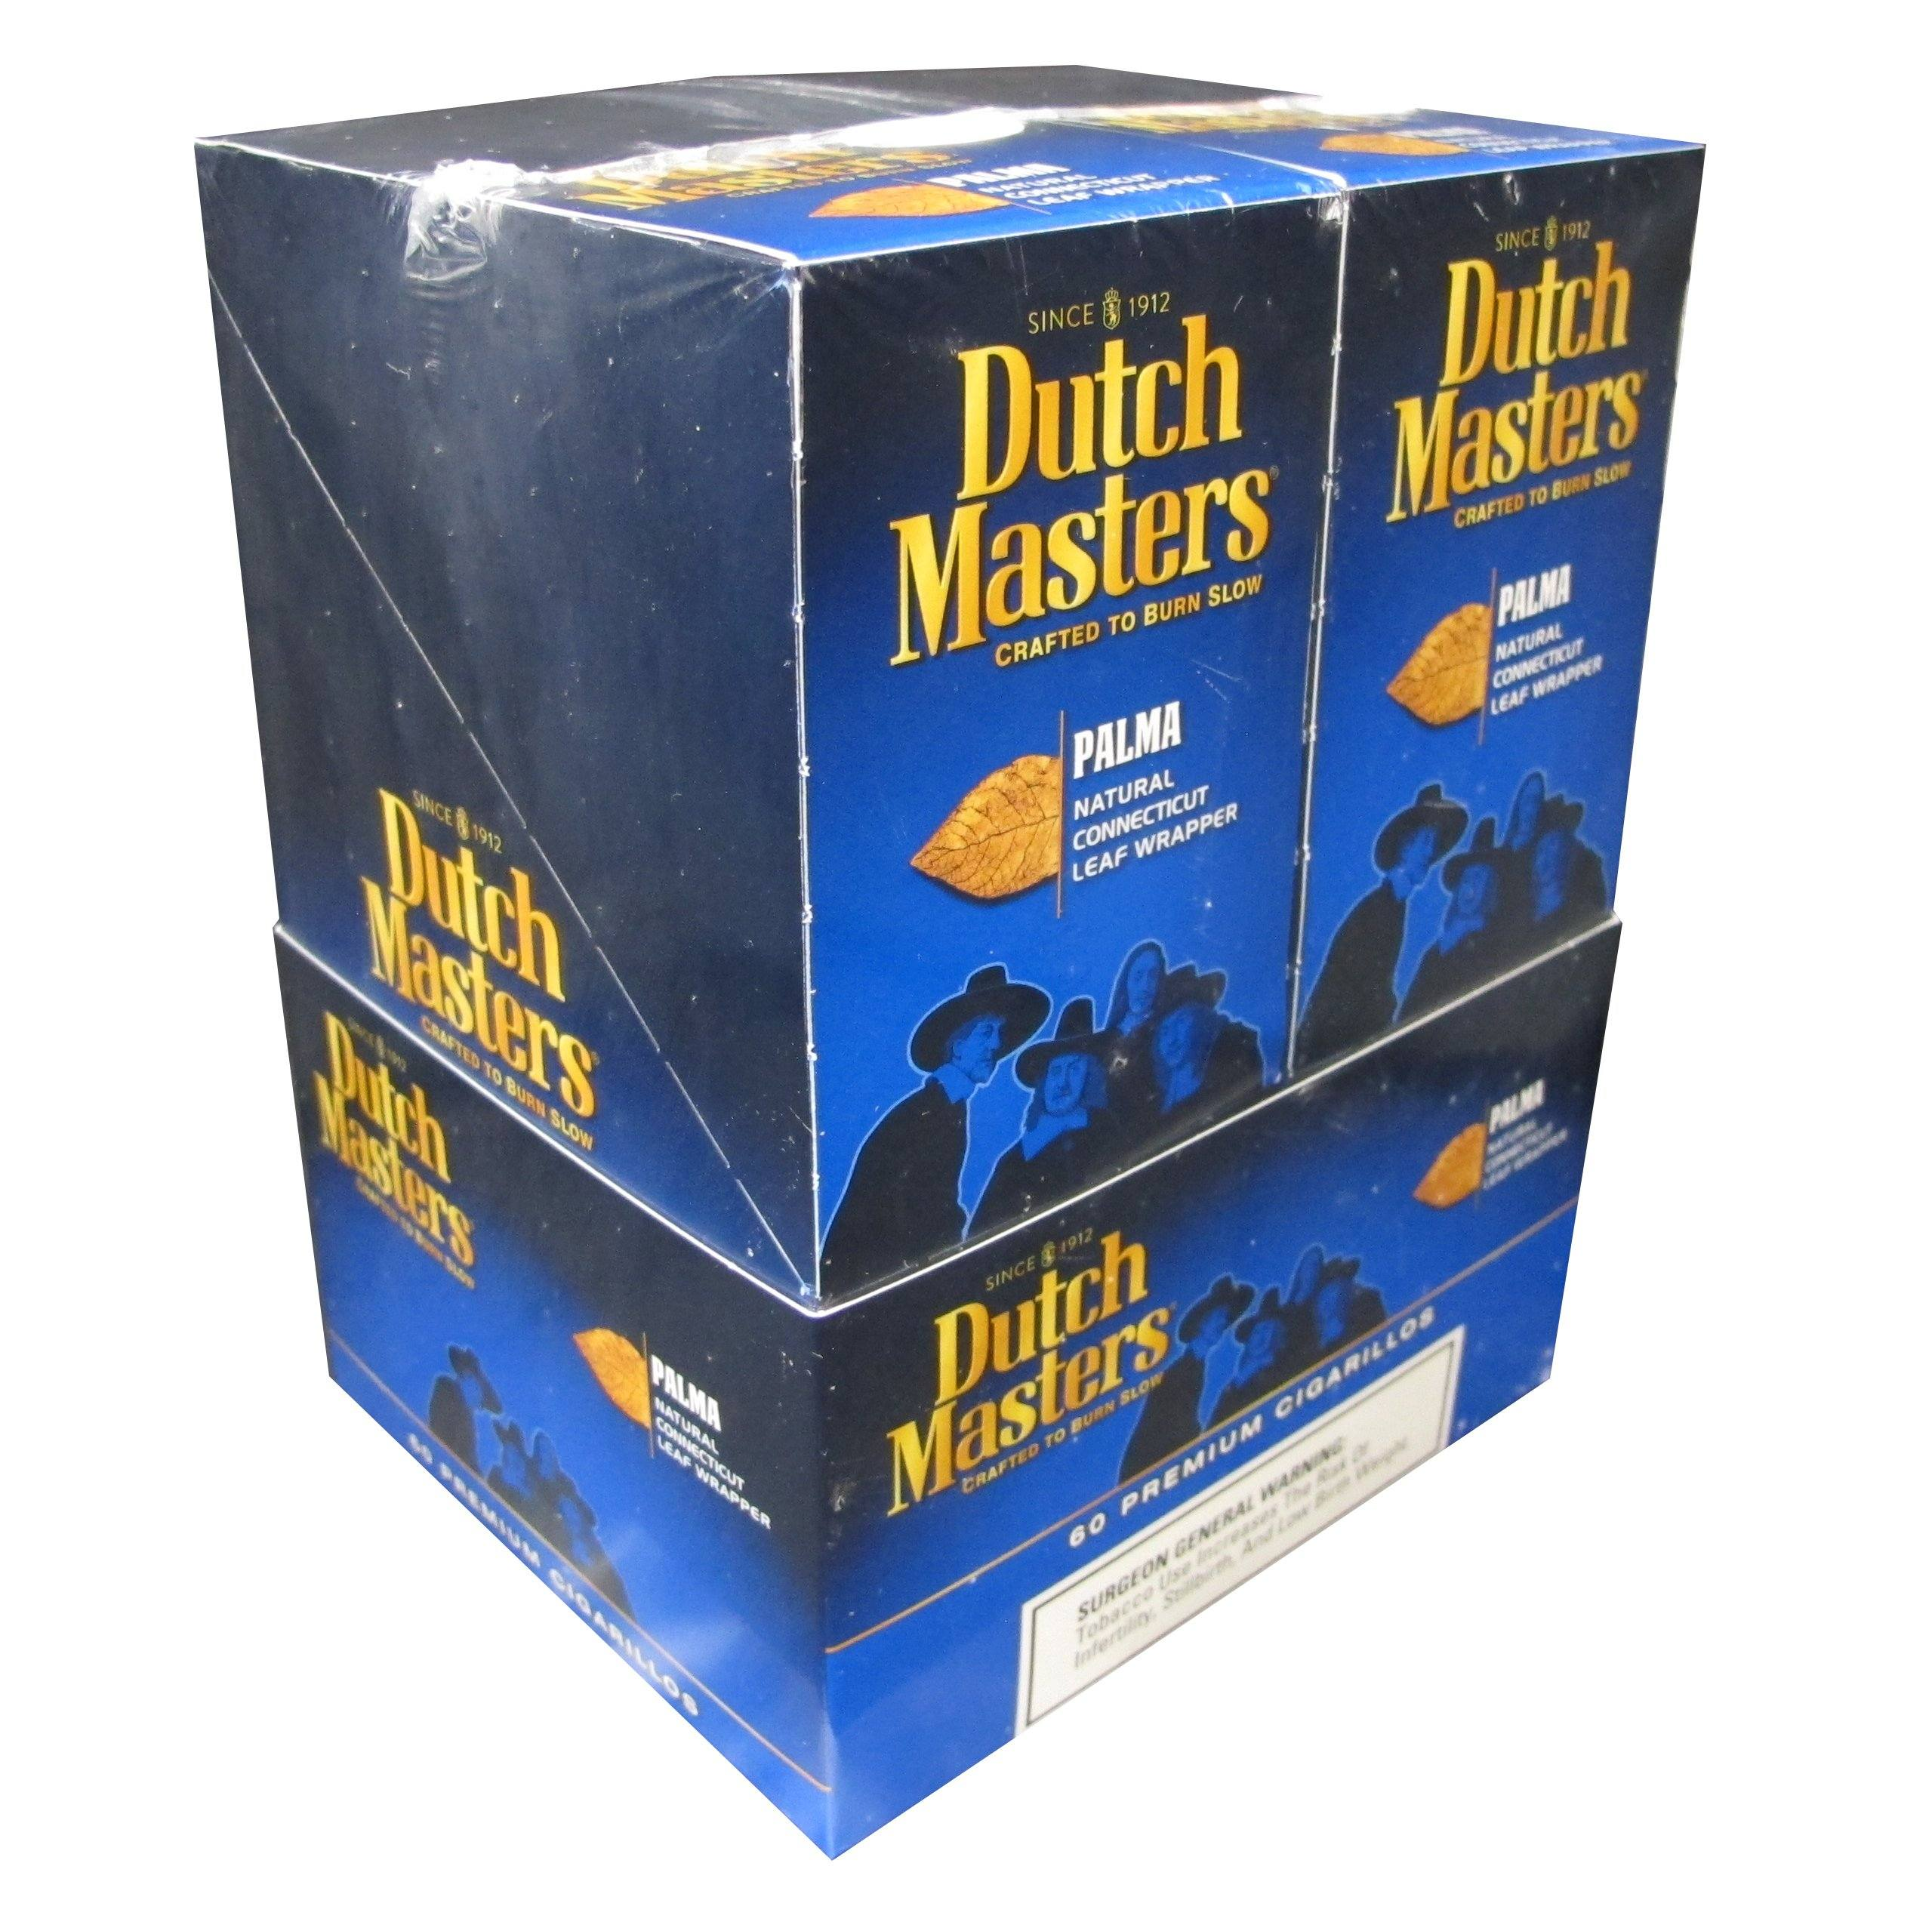 Dutch Masters Palma Cigarillos